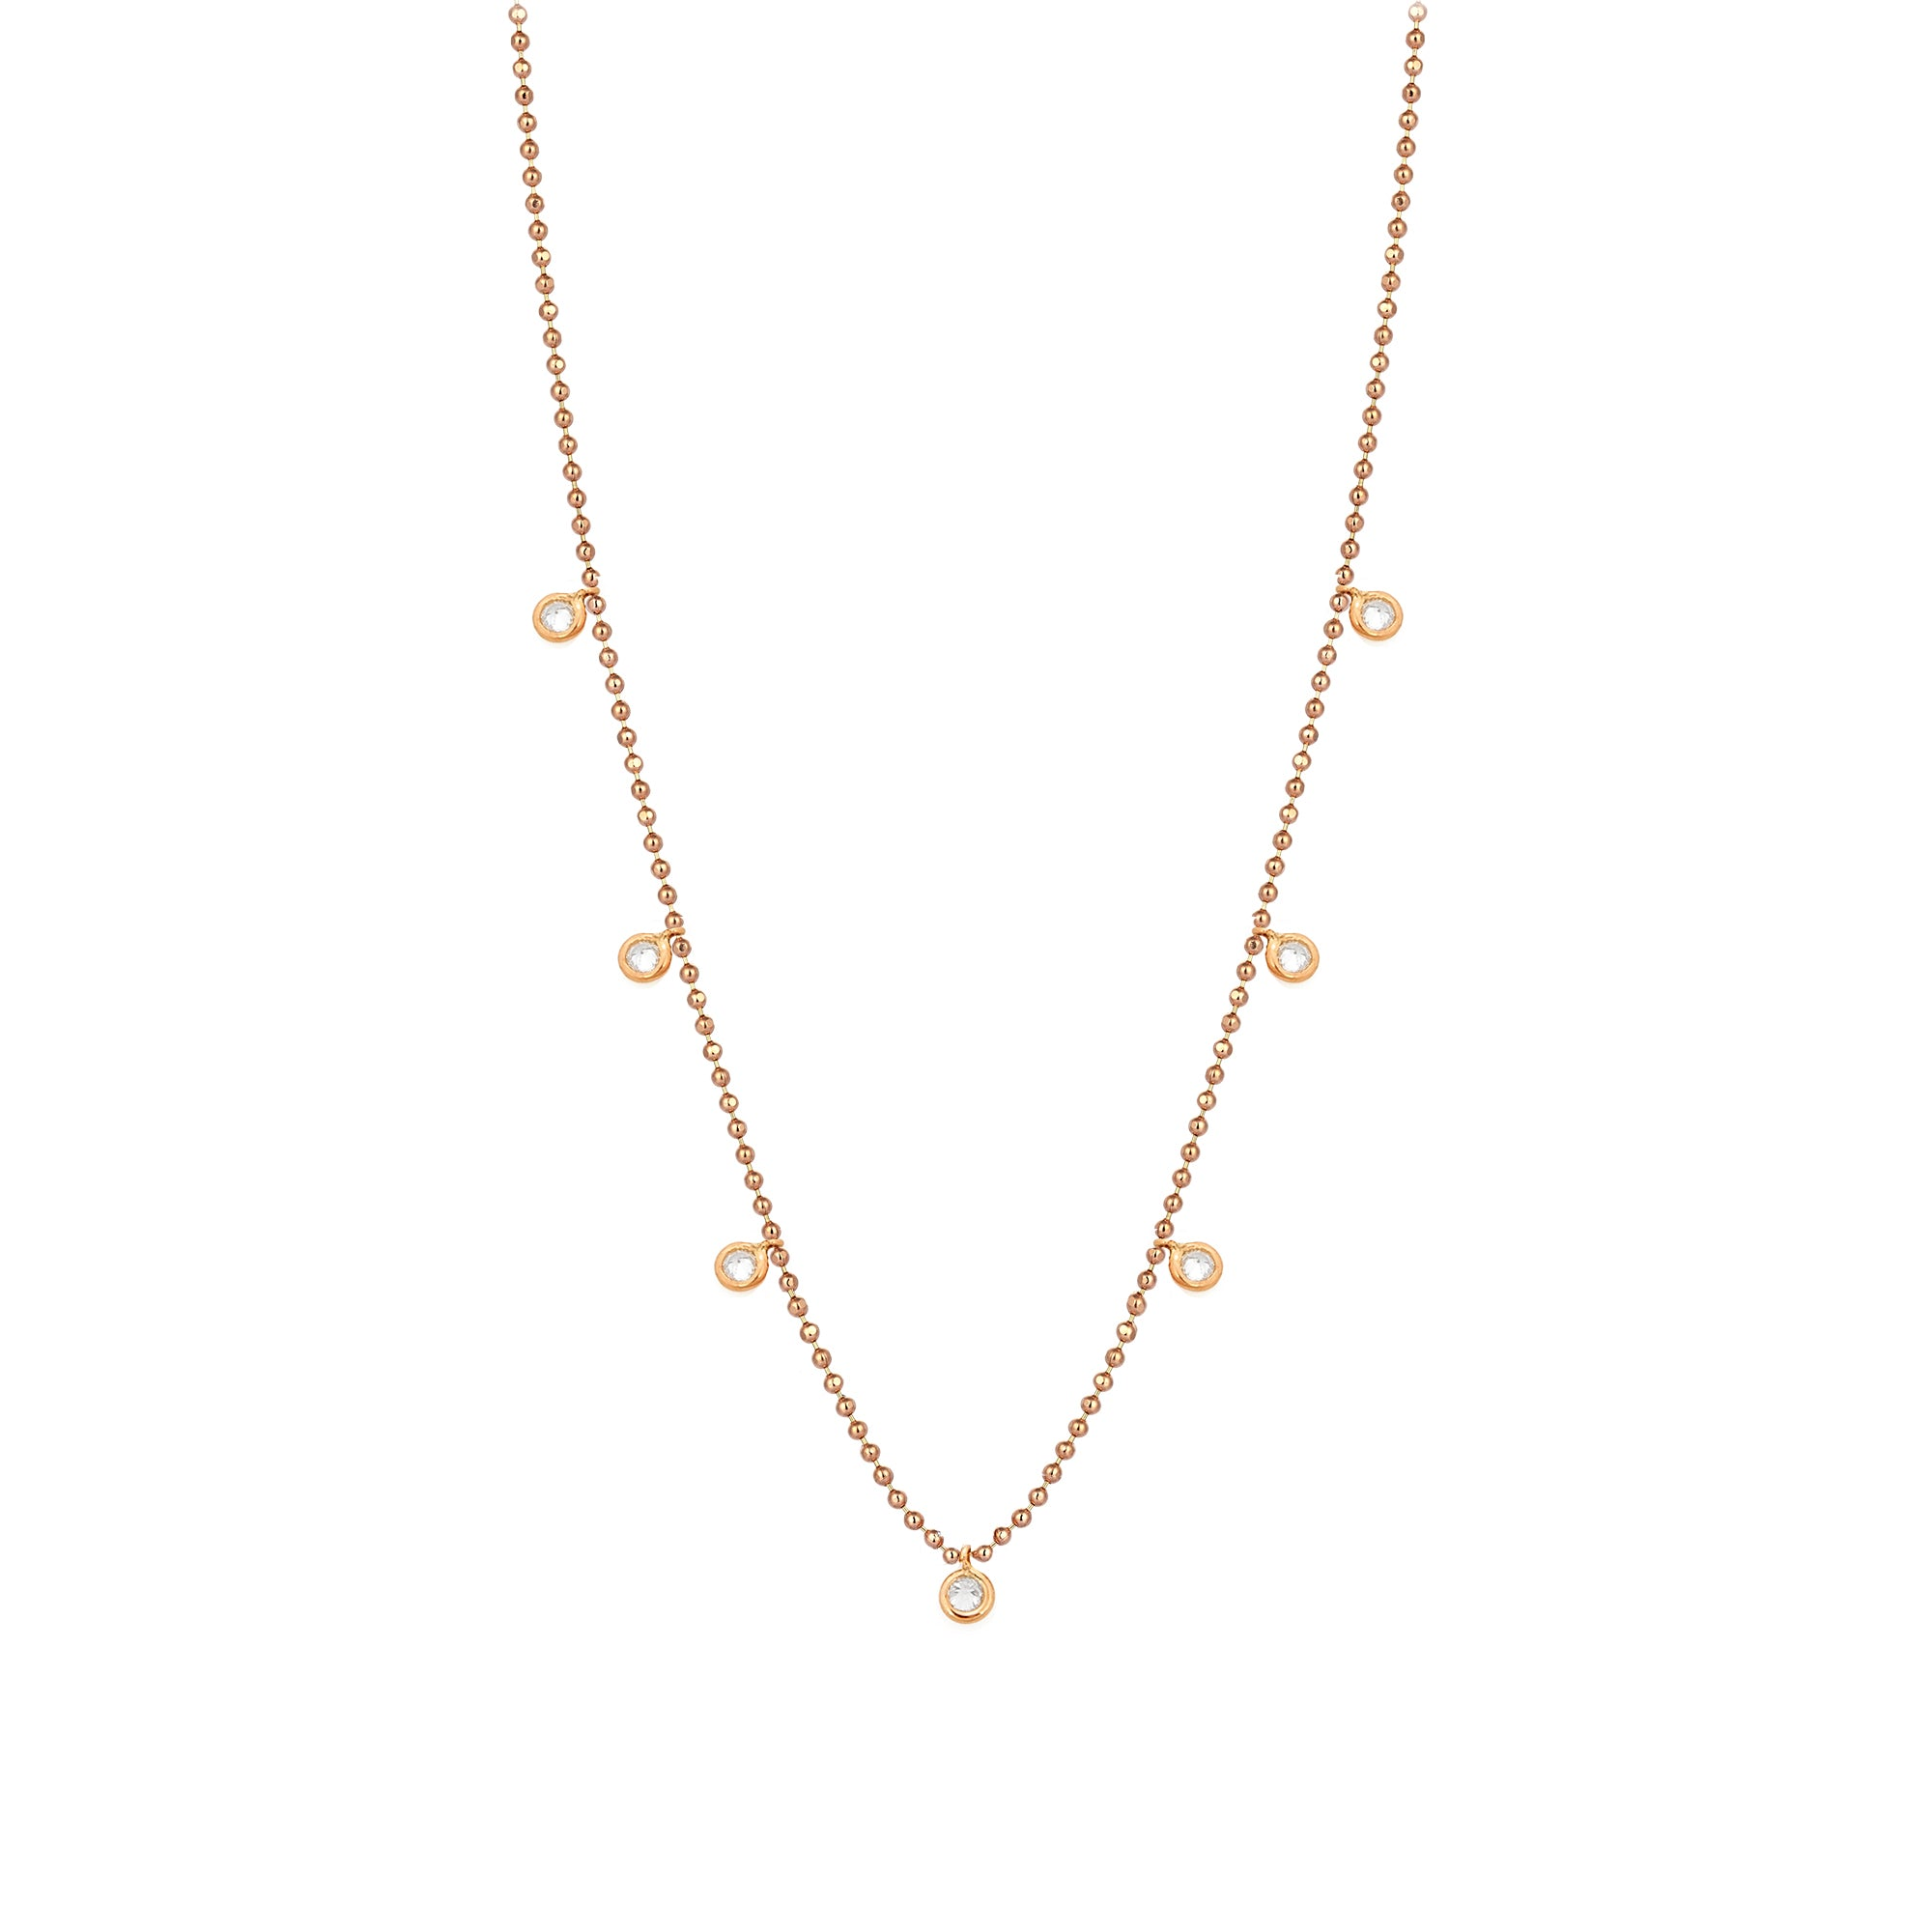 Toptop 7 Solitaire Necklace by Kismet for Broken English Jewelry